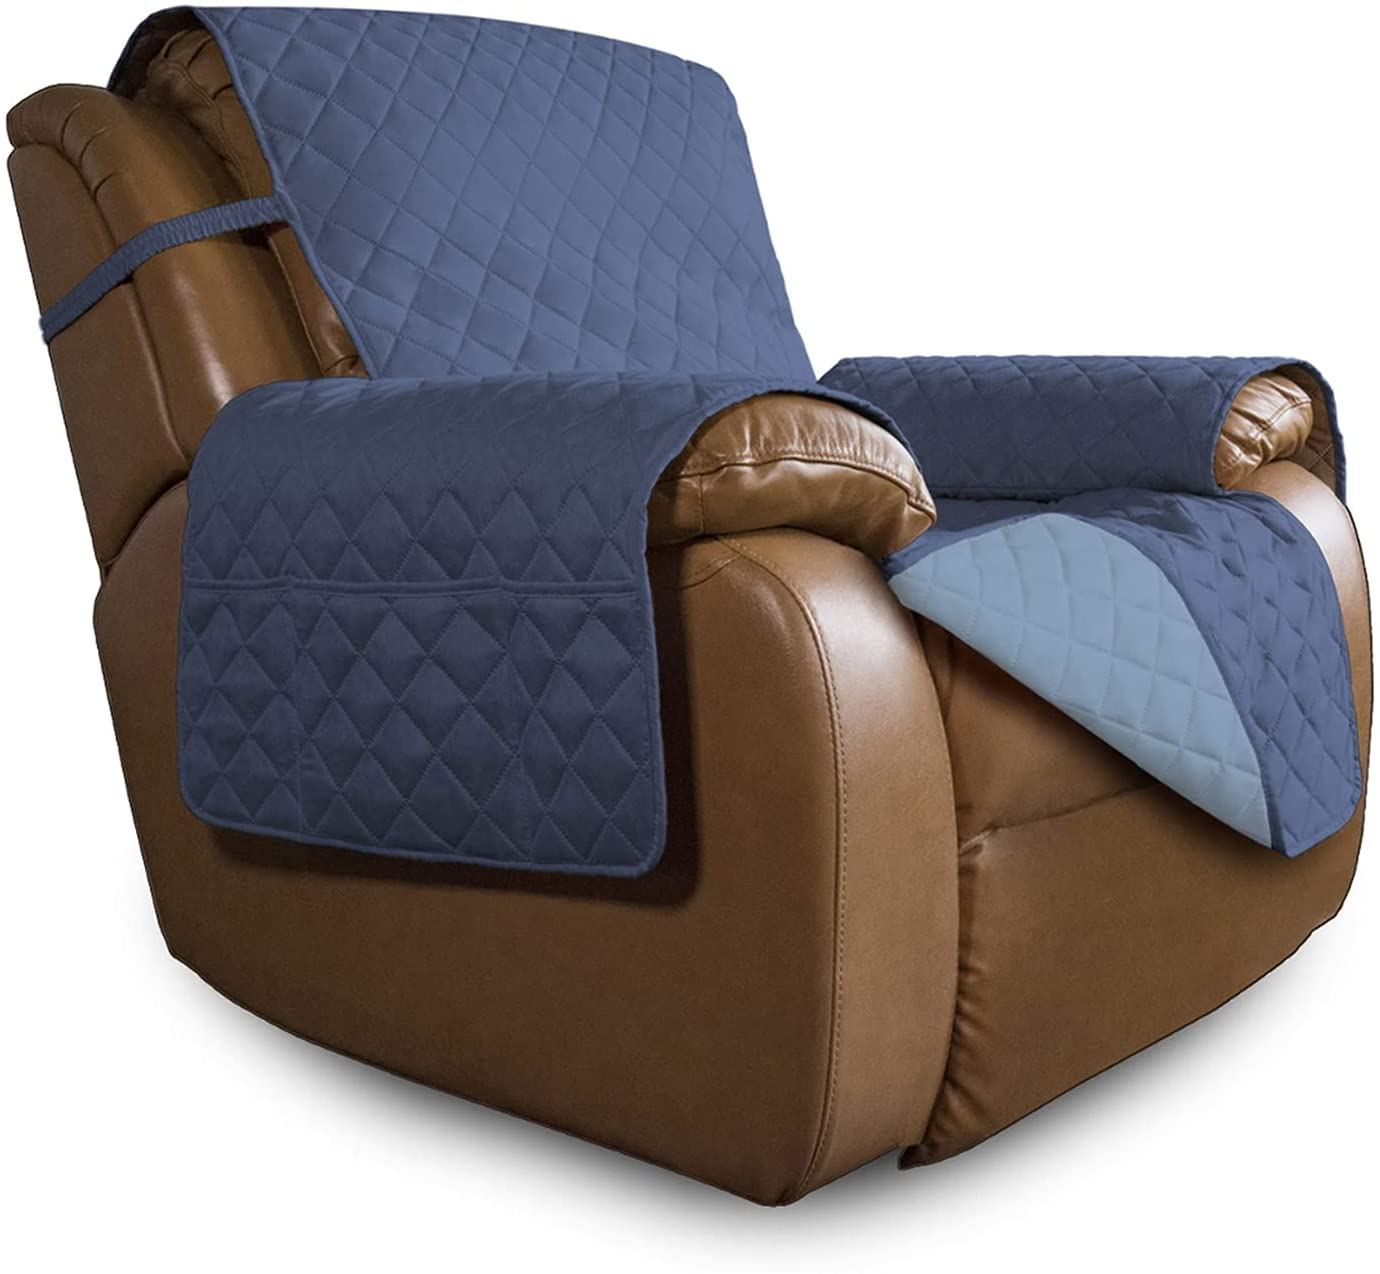 Easy-Going Oversized Recliner Reversible Furniture 1 Super beauty product restock quality top! year warranty Sofa Pr Cover